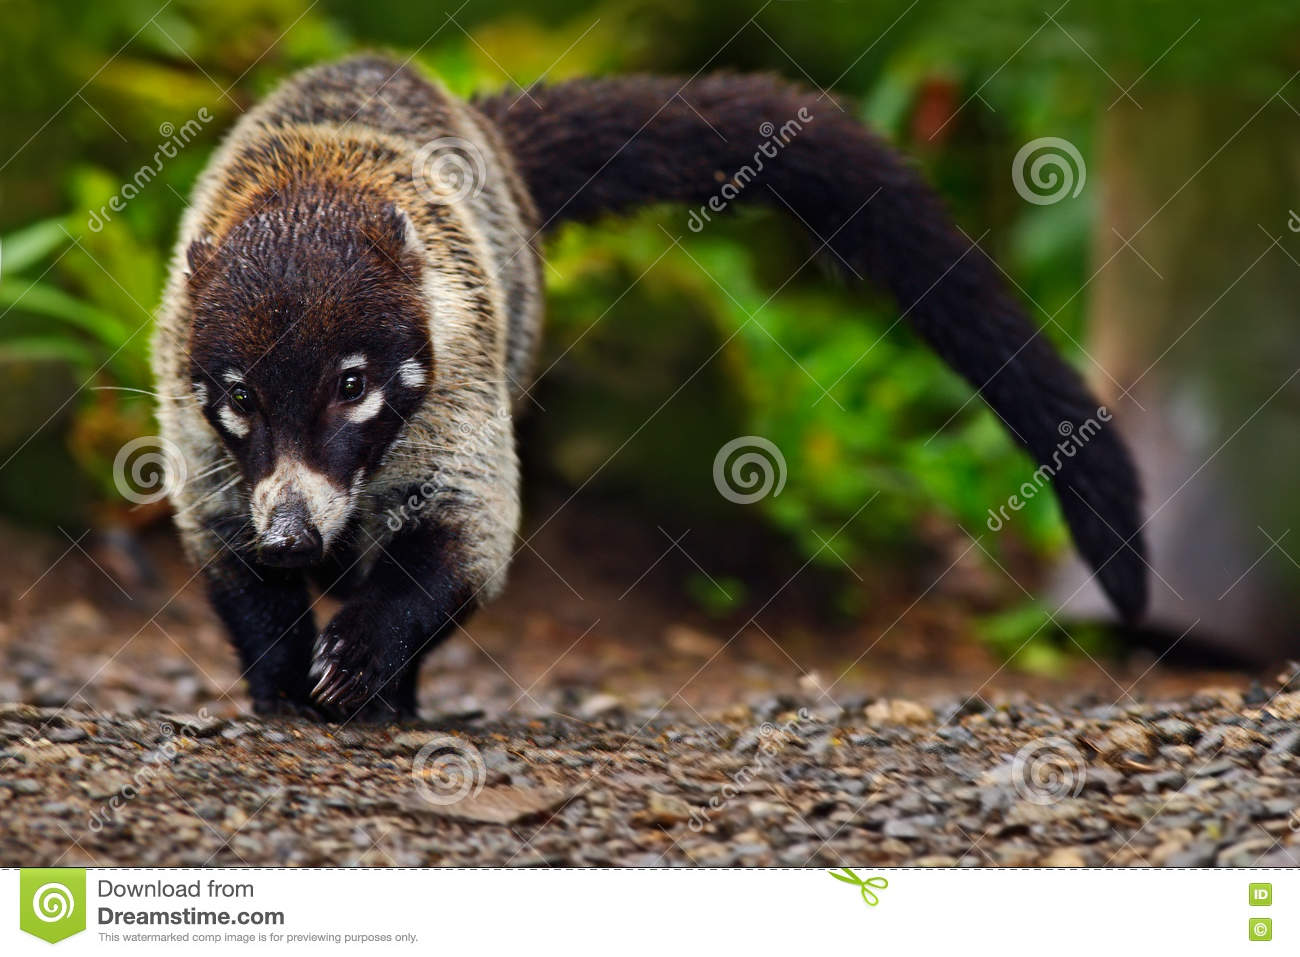 Raccoon, Procyon lotor, walking on white sand beach in National Park Manuel Antonio, Costa Rica, Raccoon in the forest. Raccoon wi